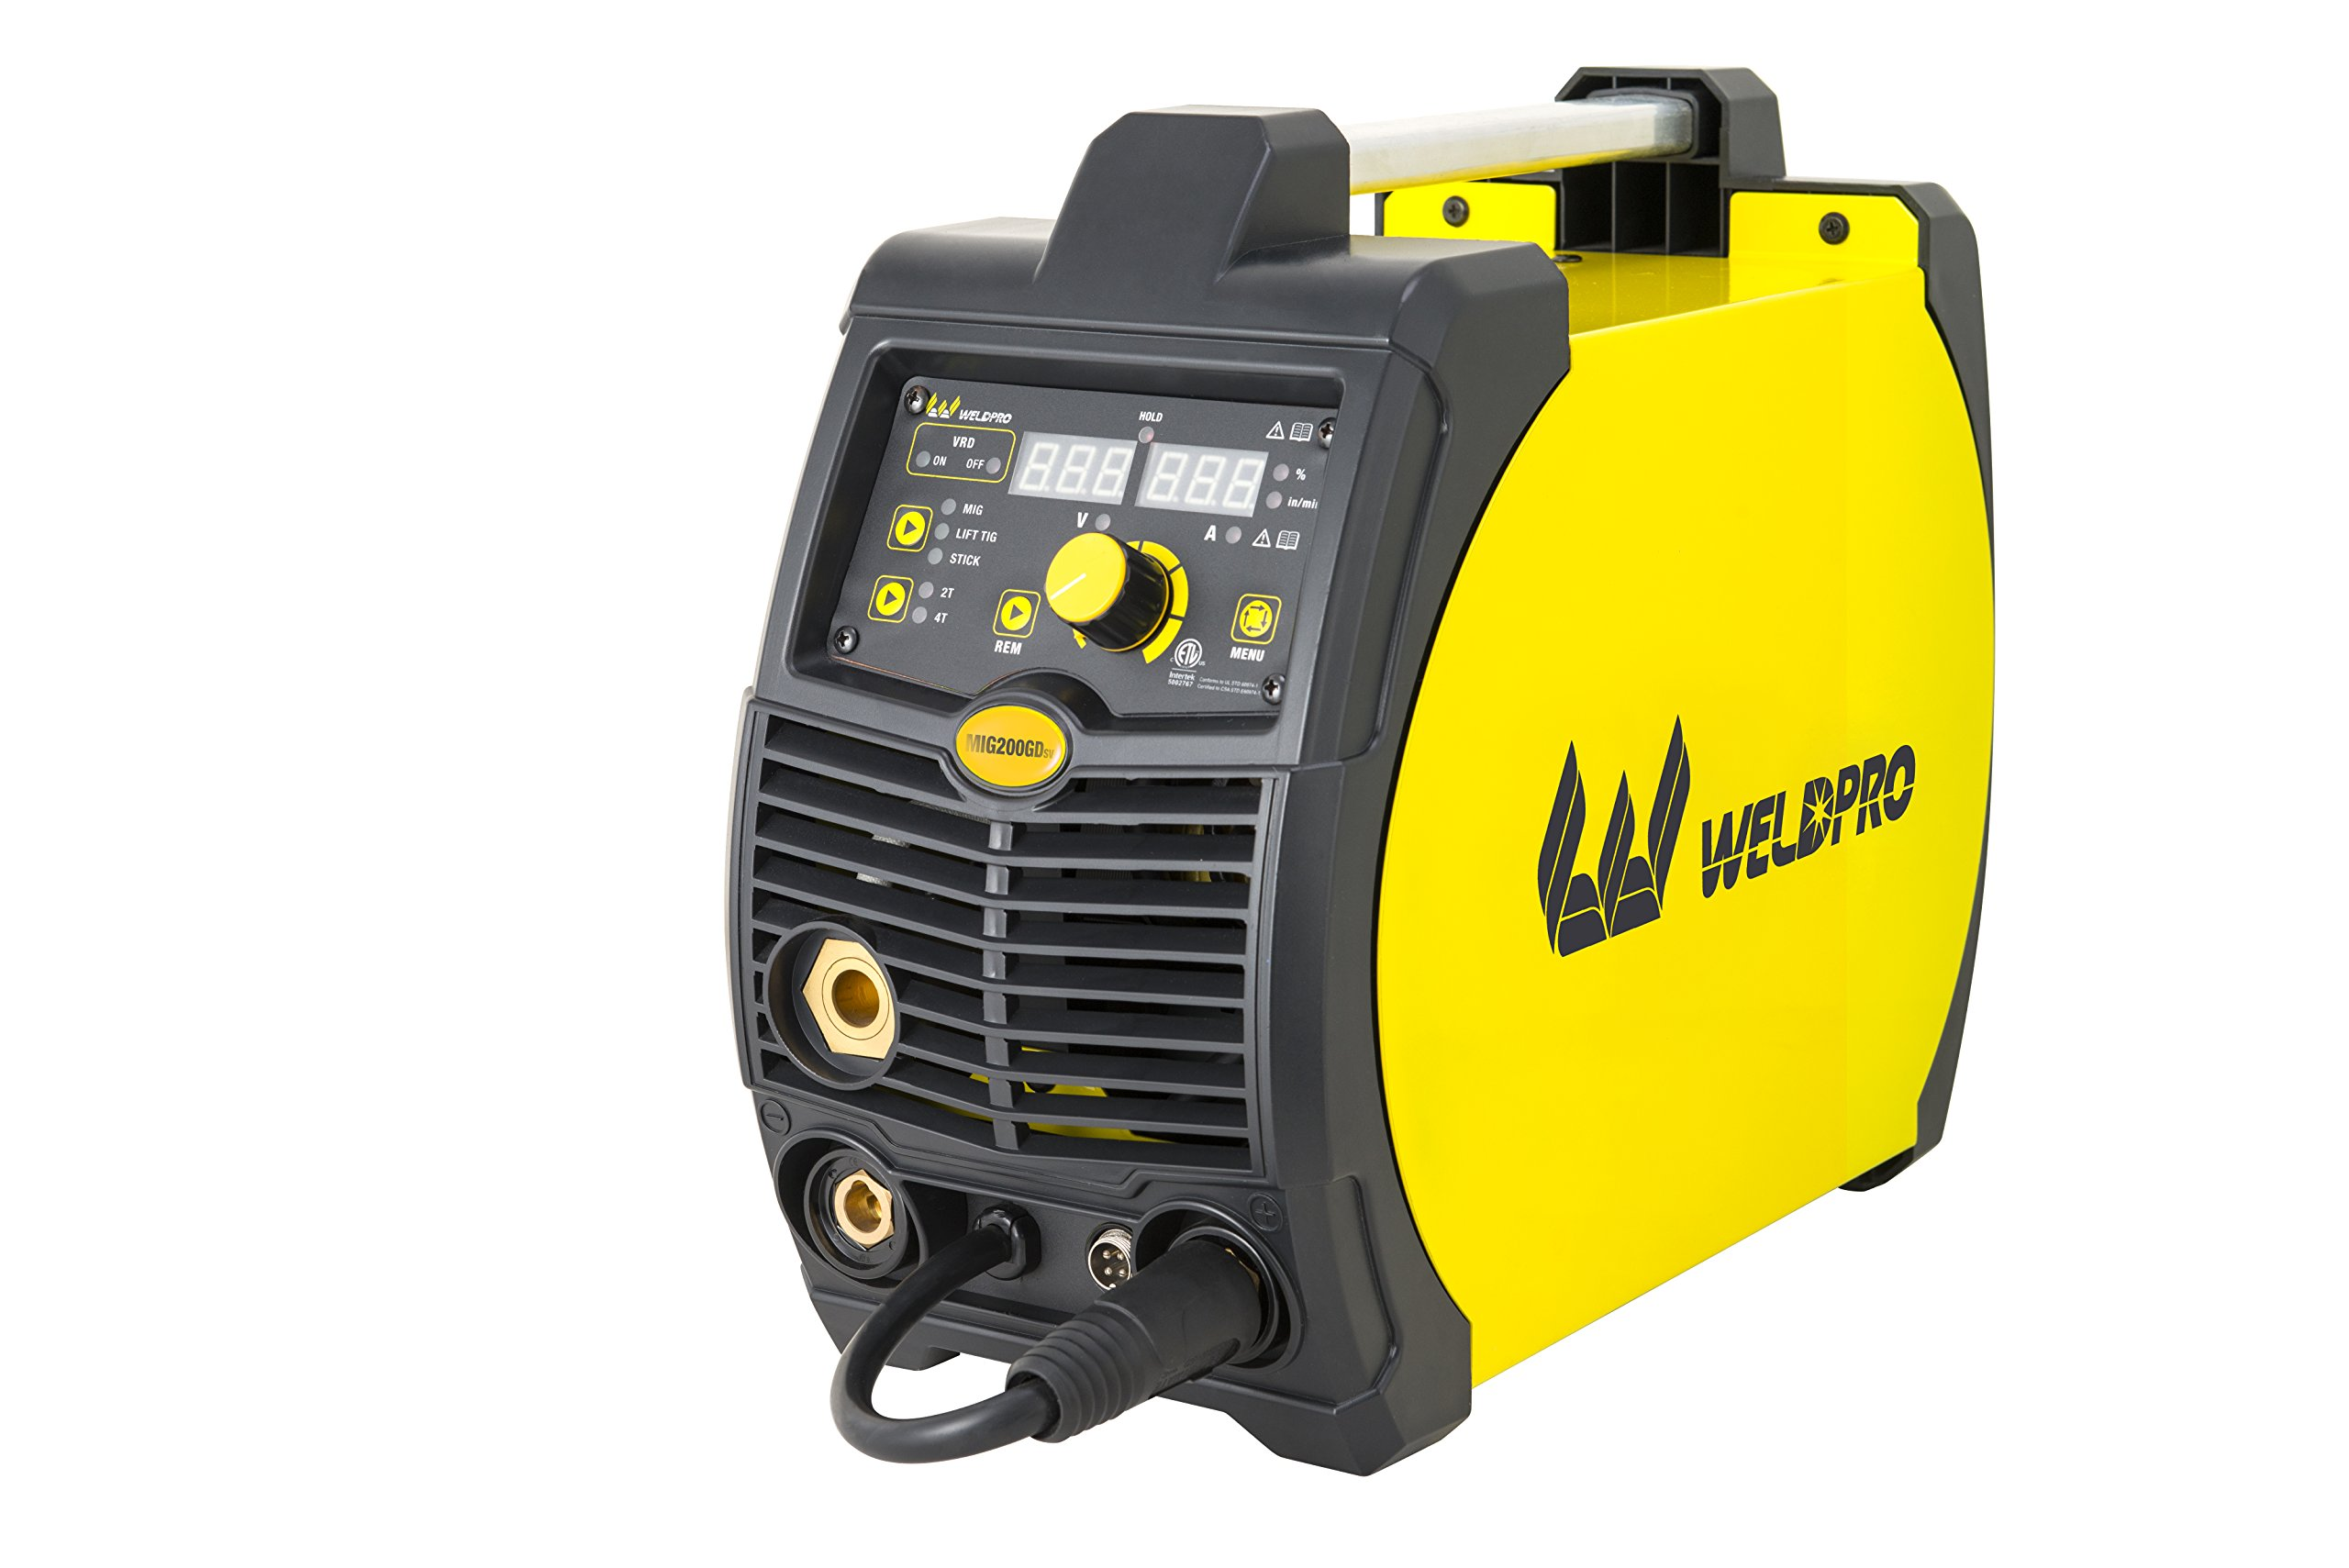 Weldpro 200 Amp Inverter Multi Process Welder with Dual Voltage 220V/110V Mig/Tig/Arc Stick 3 1 welder/welding machine by W Weldpro (Image #3)